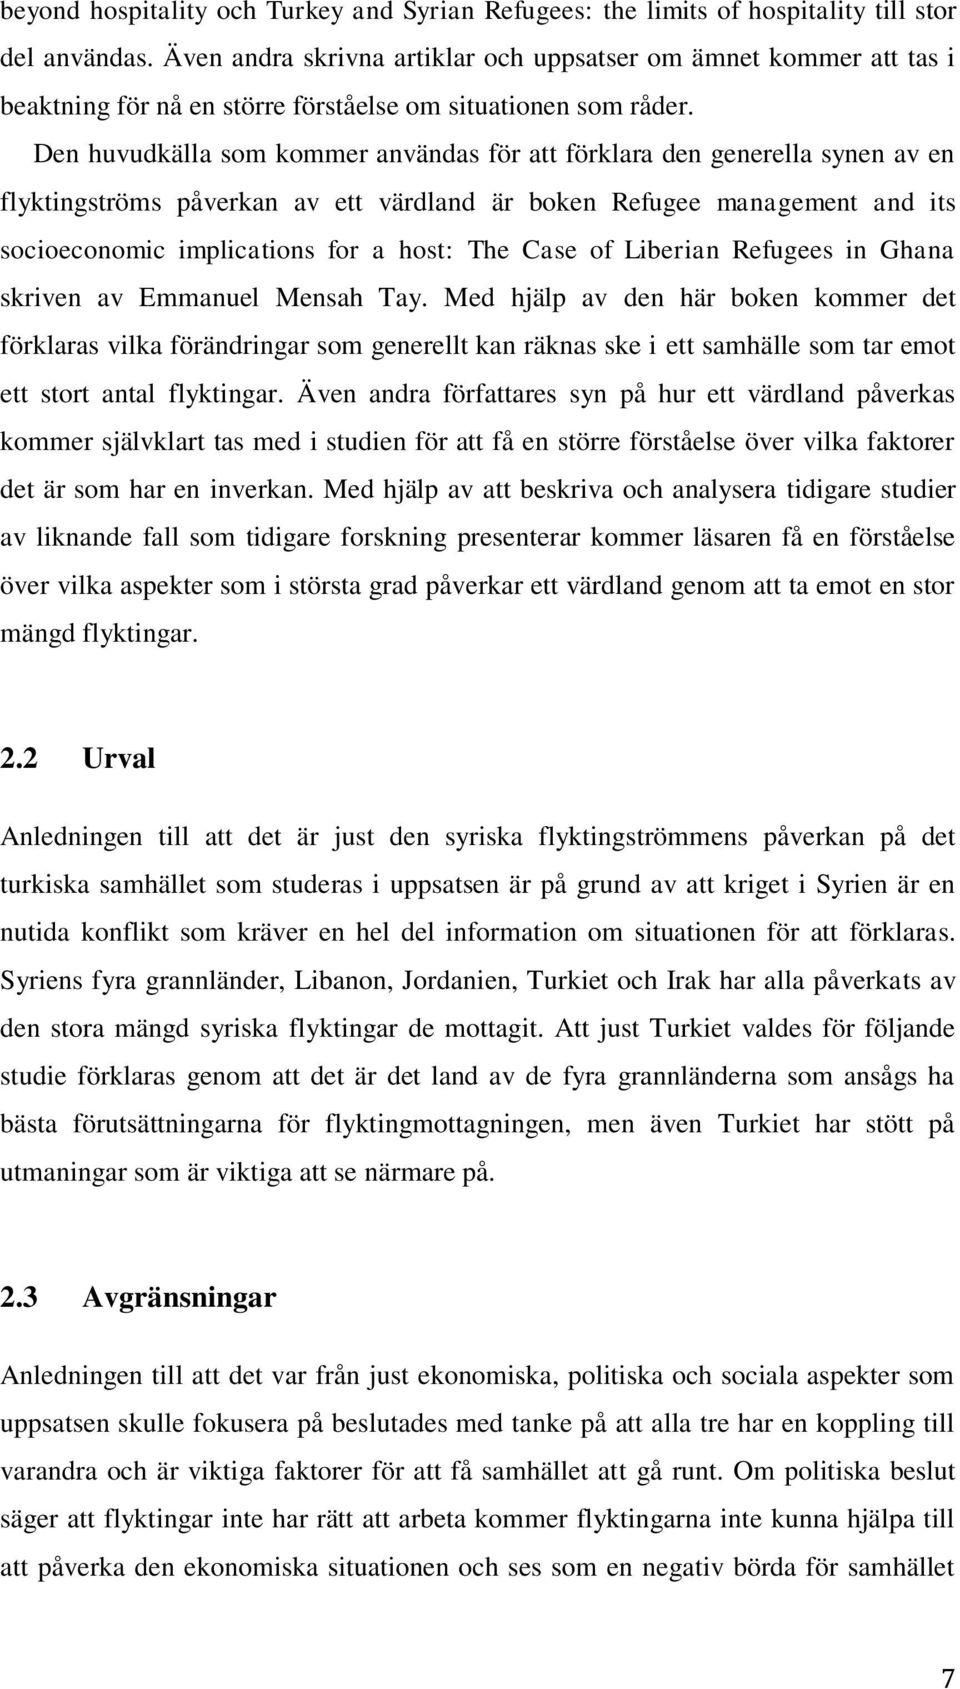 Den huvudkälla som kommer användas för att förklara den generella synen av en flyktingströms påverkan av ett värdland är boken Refugee management and its socioeconomic implications for a host: The